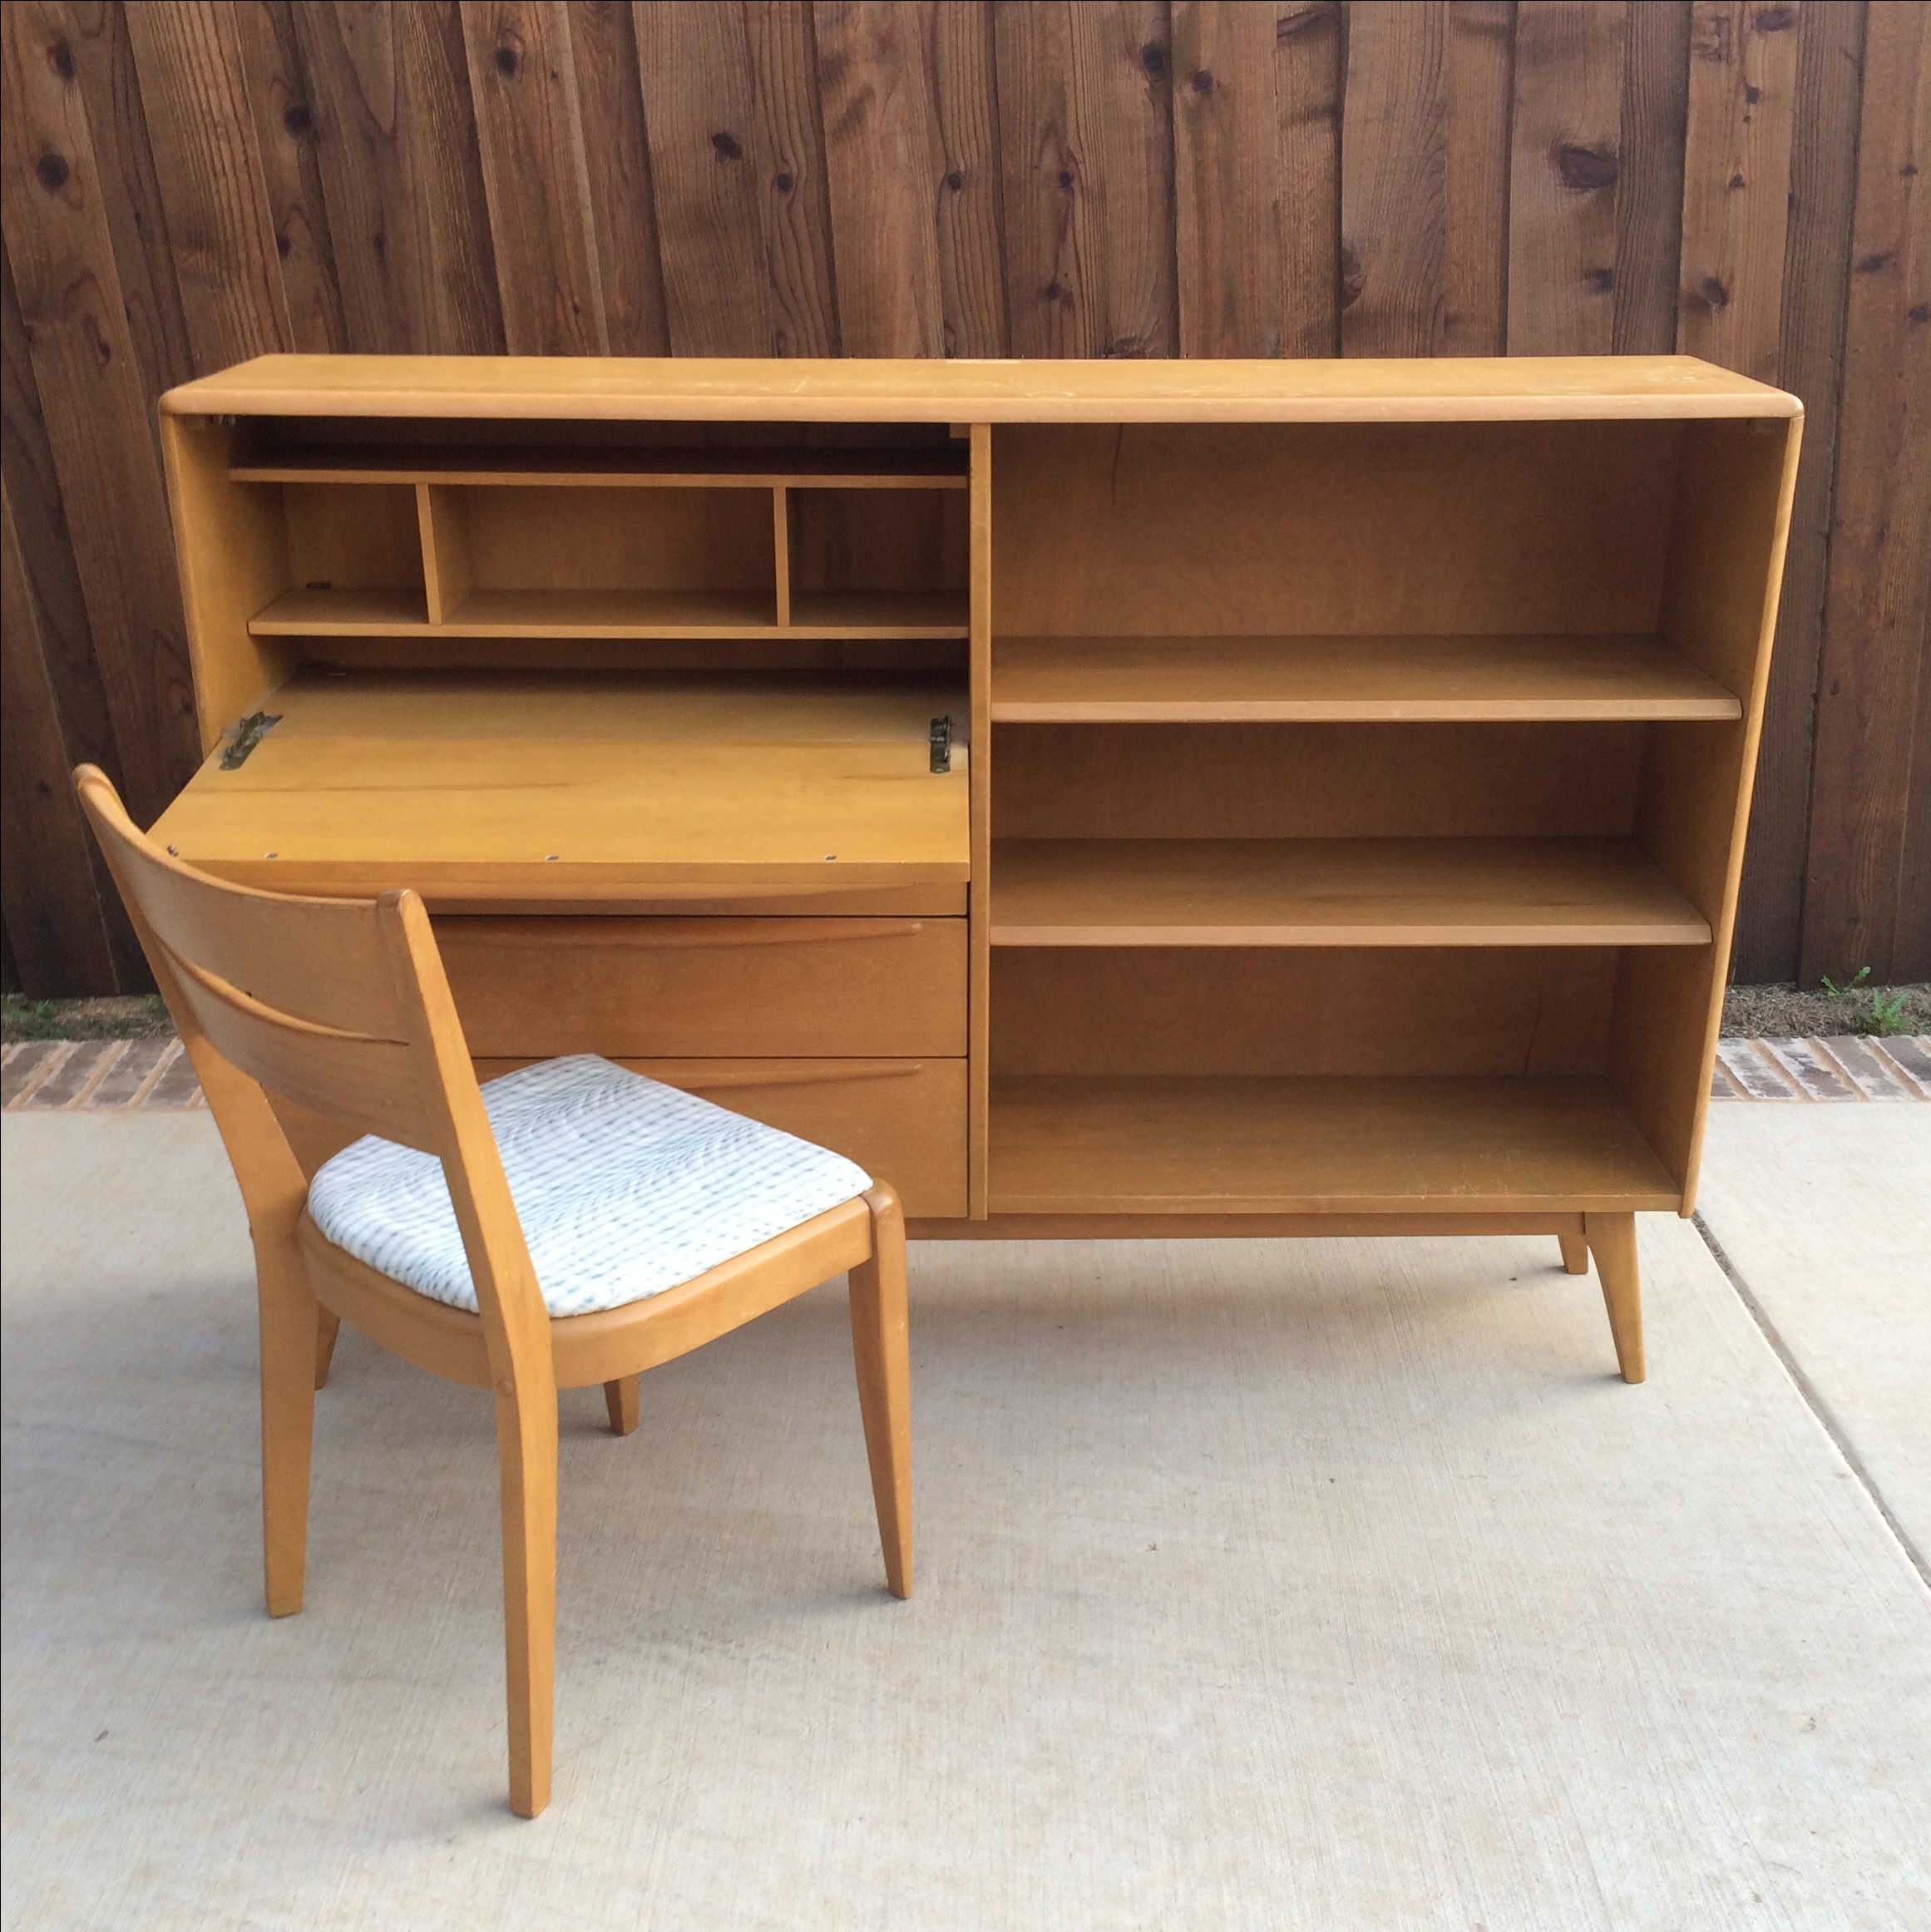 Heywood Wakefield Drop Down Desk And Bookshelf With Chair   Image 2 Of 11